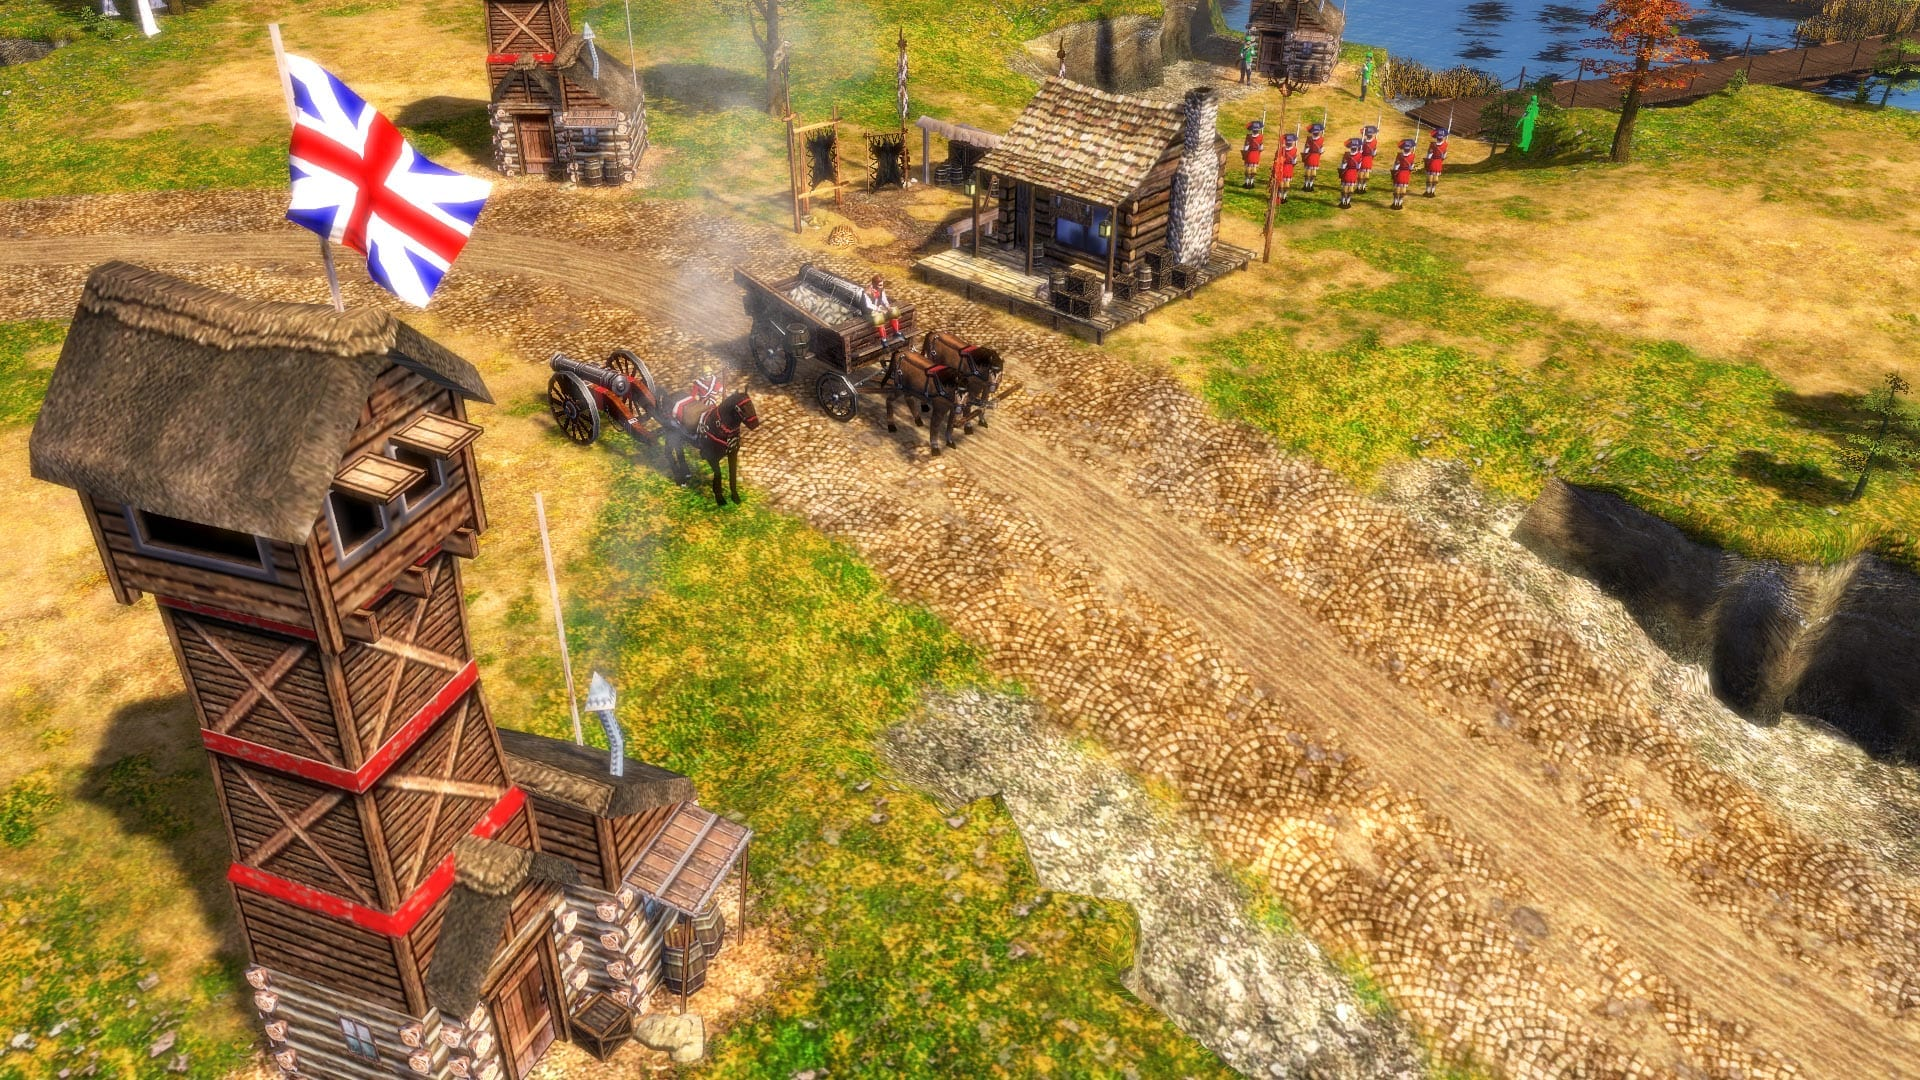 esocommunity age of empires iii tournaments replays - HD1920×1080